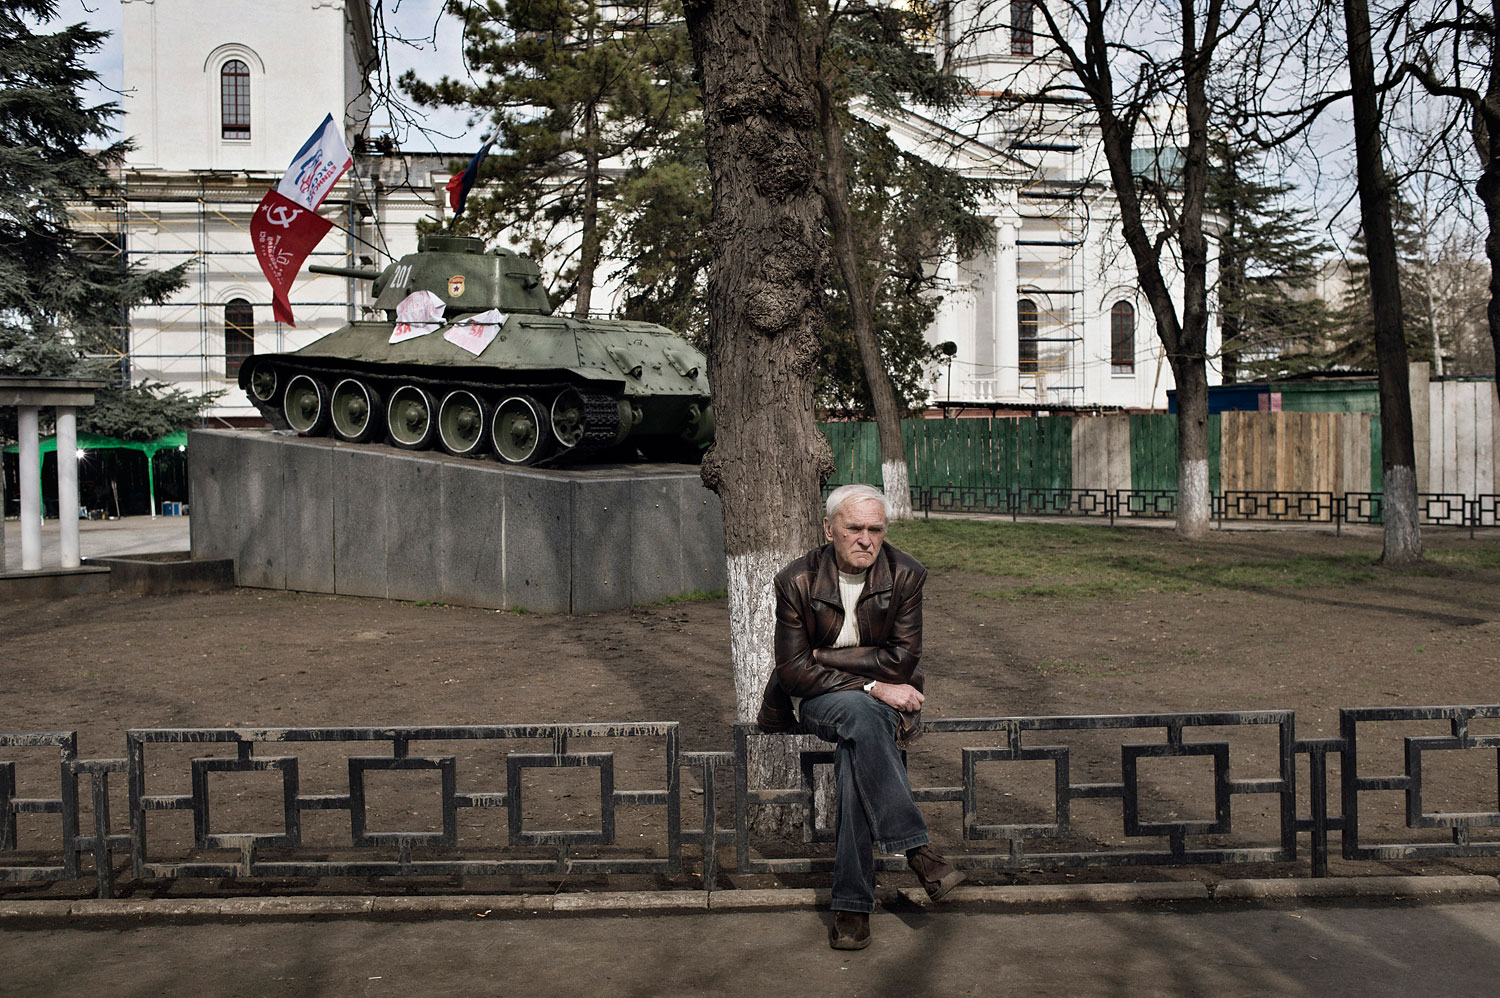 Man watches a pro-Russian rally near the local parliament building in Crimea's capital Simferopol, March 6, 2014.